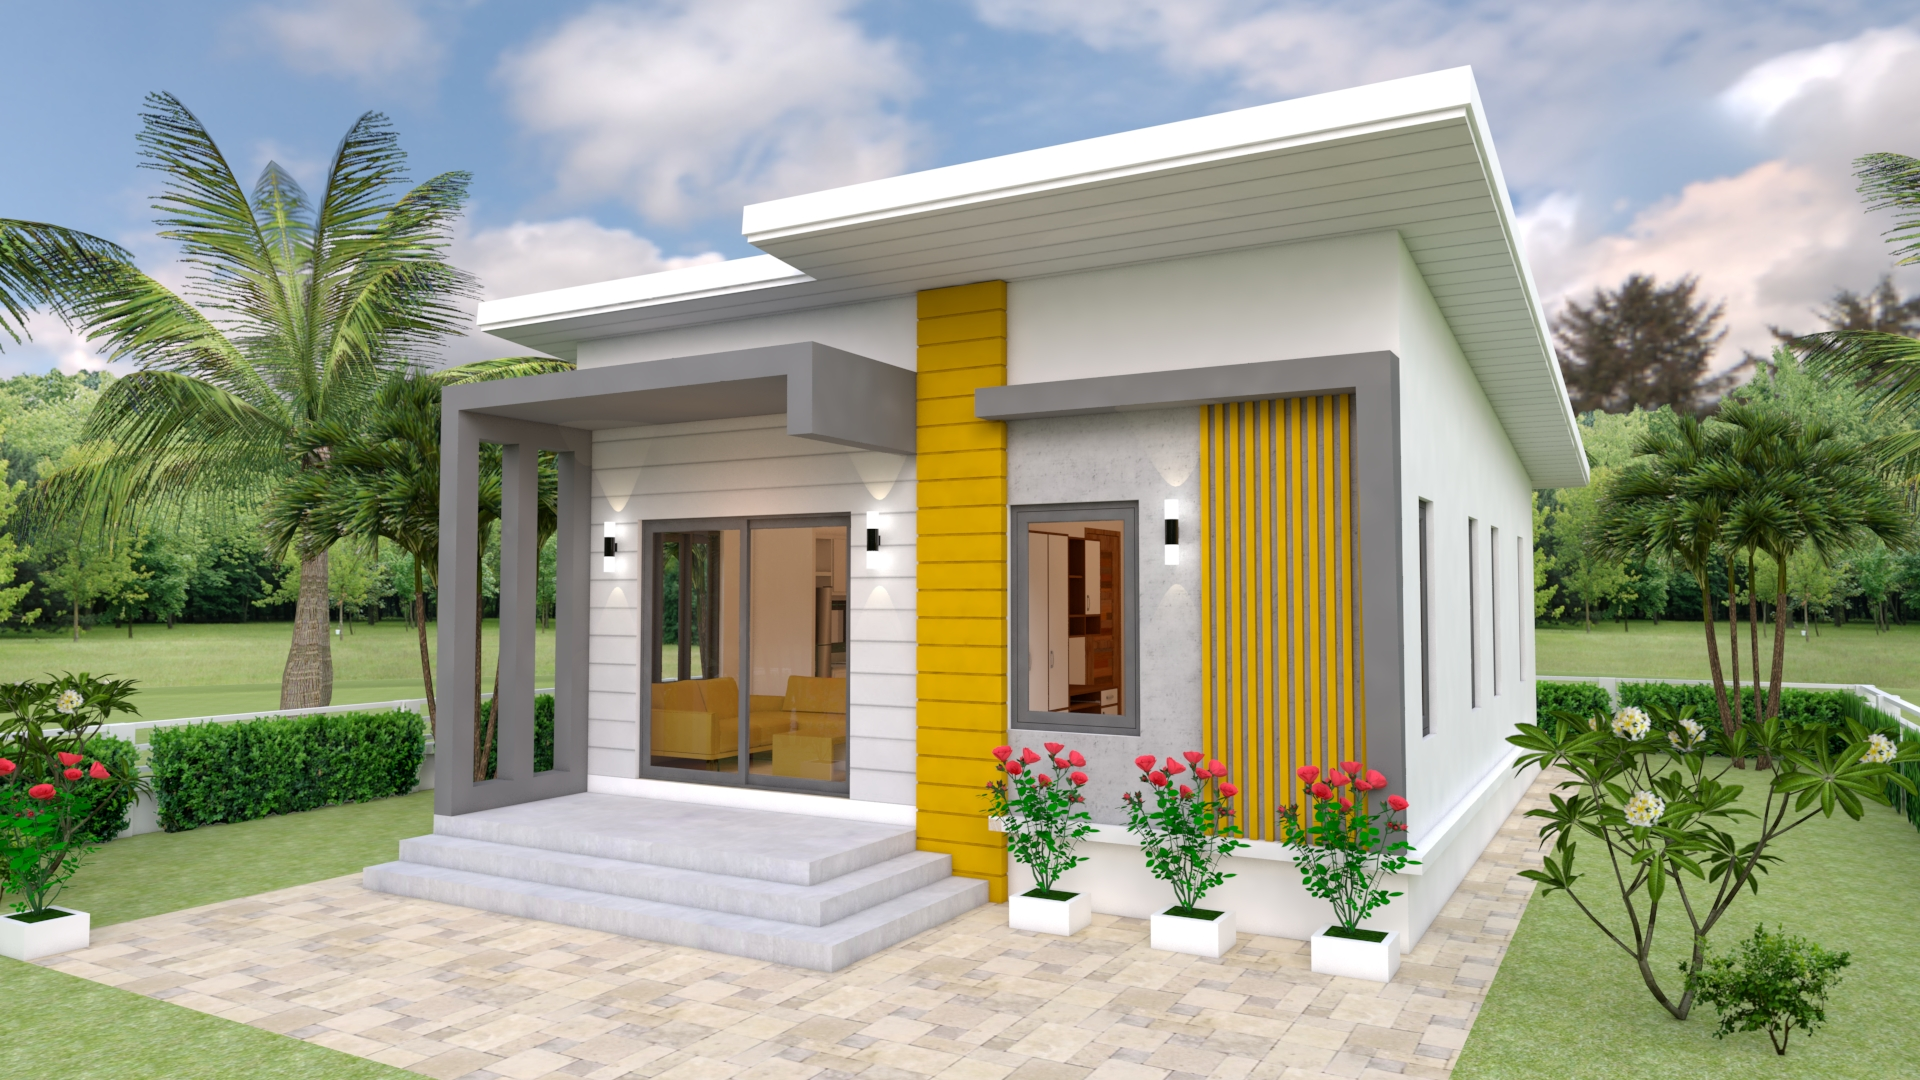 House Design Plans 7x12 With 2 Bedrooms